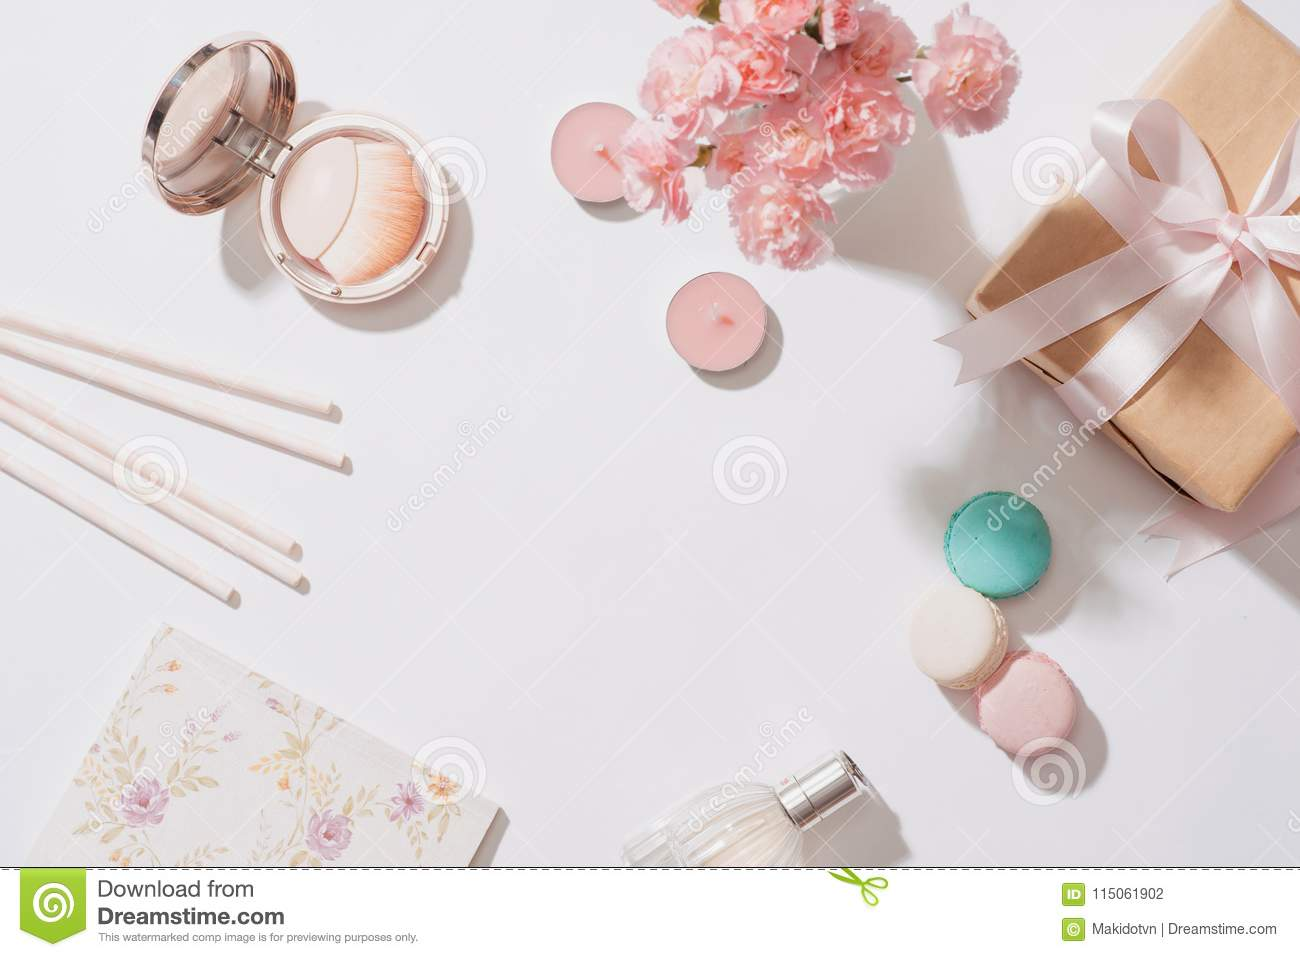 Creative and fashion composition. Stationery objects on desk. Fl